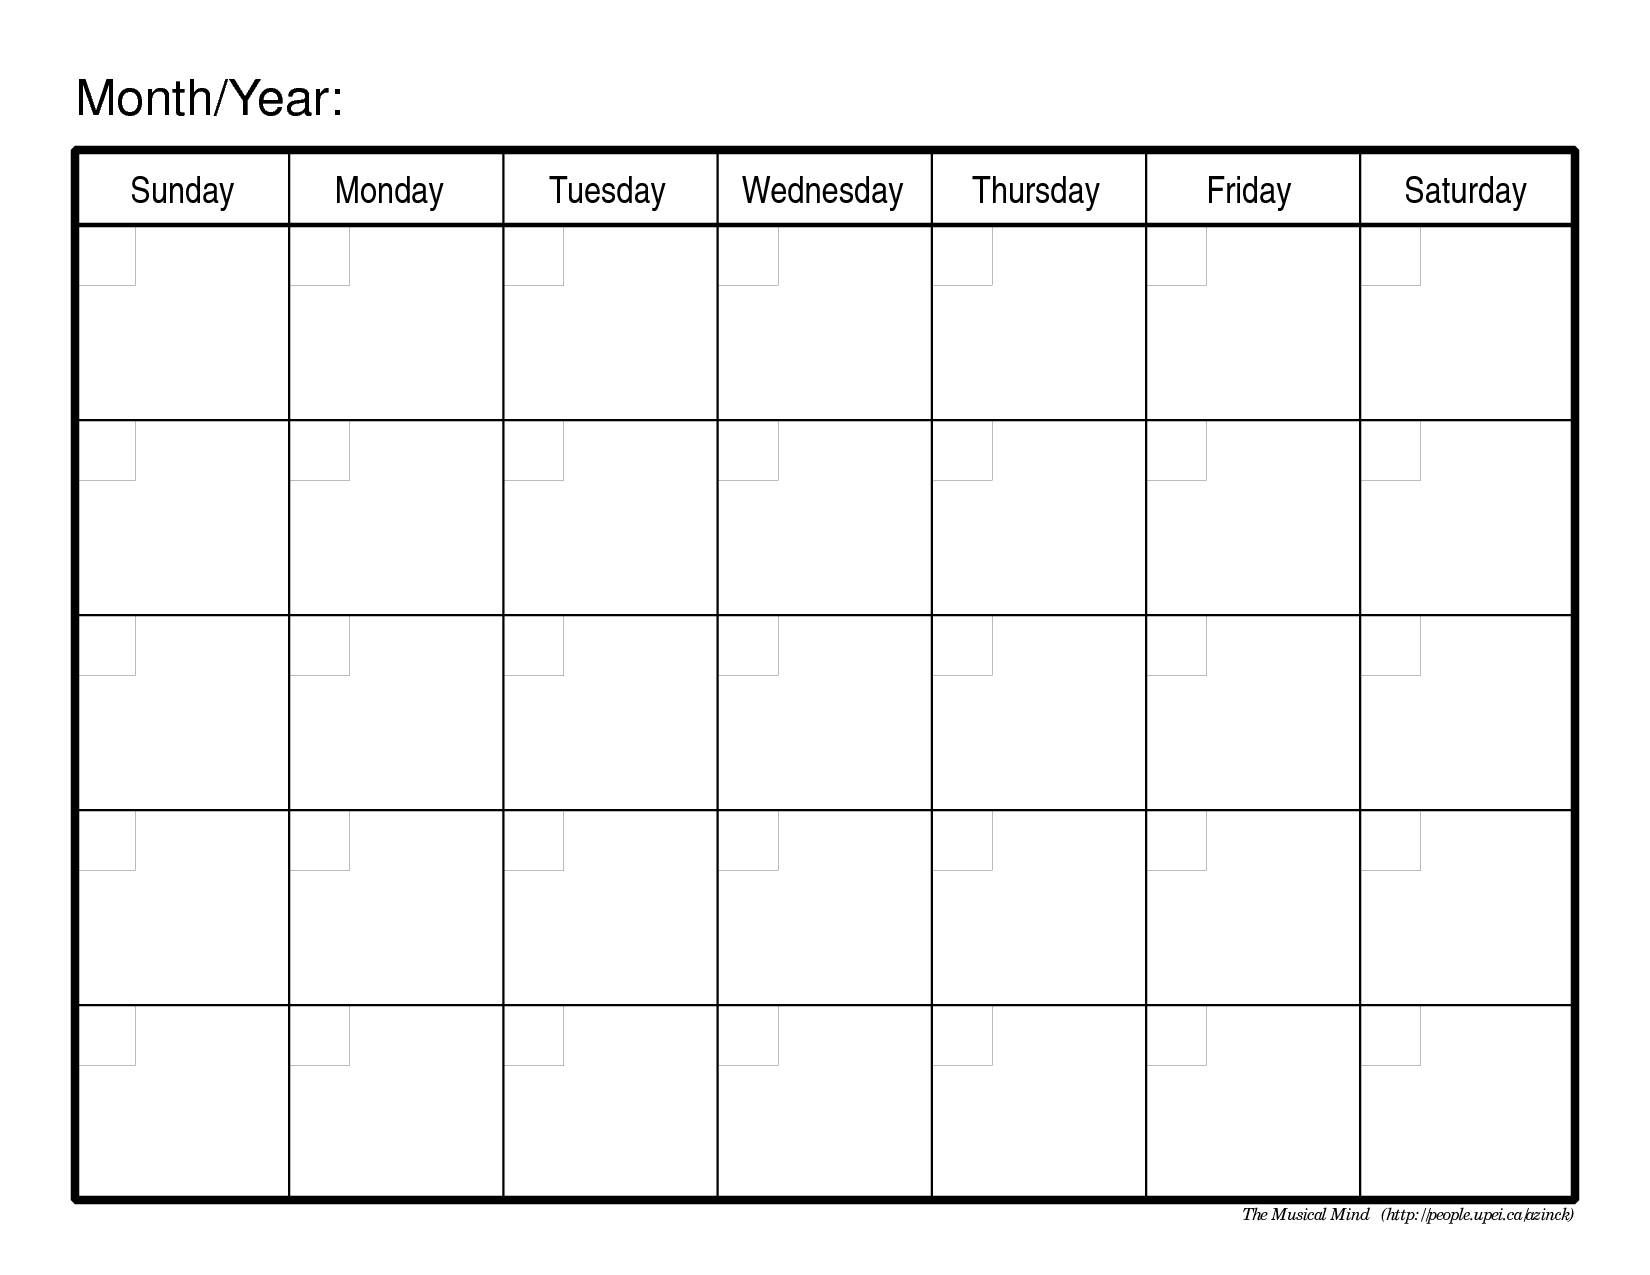 Month Calendar Template Word  Bolan.horizonconsulting.co within Preschool Monthly Calendar Template